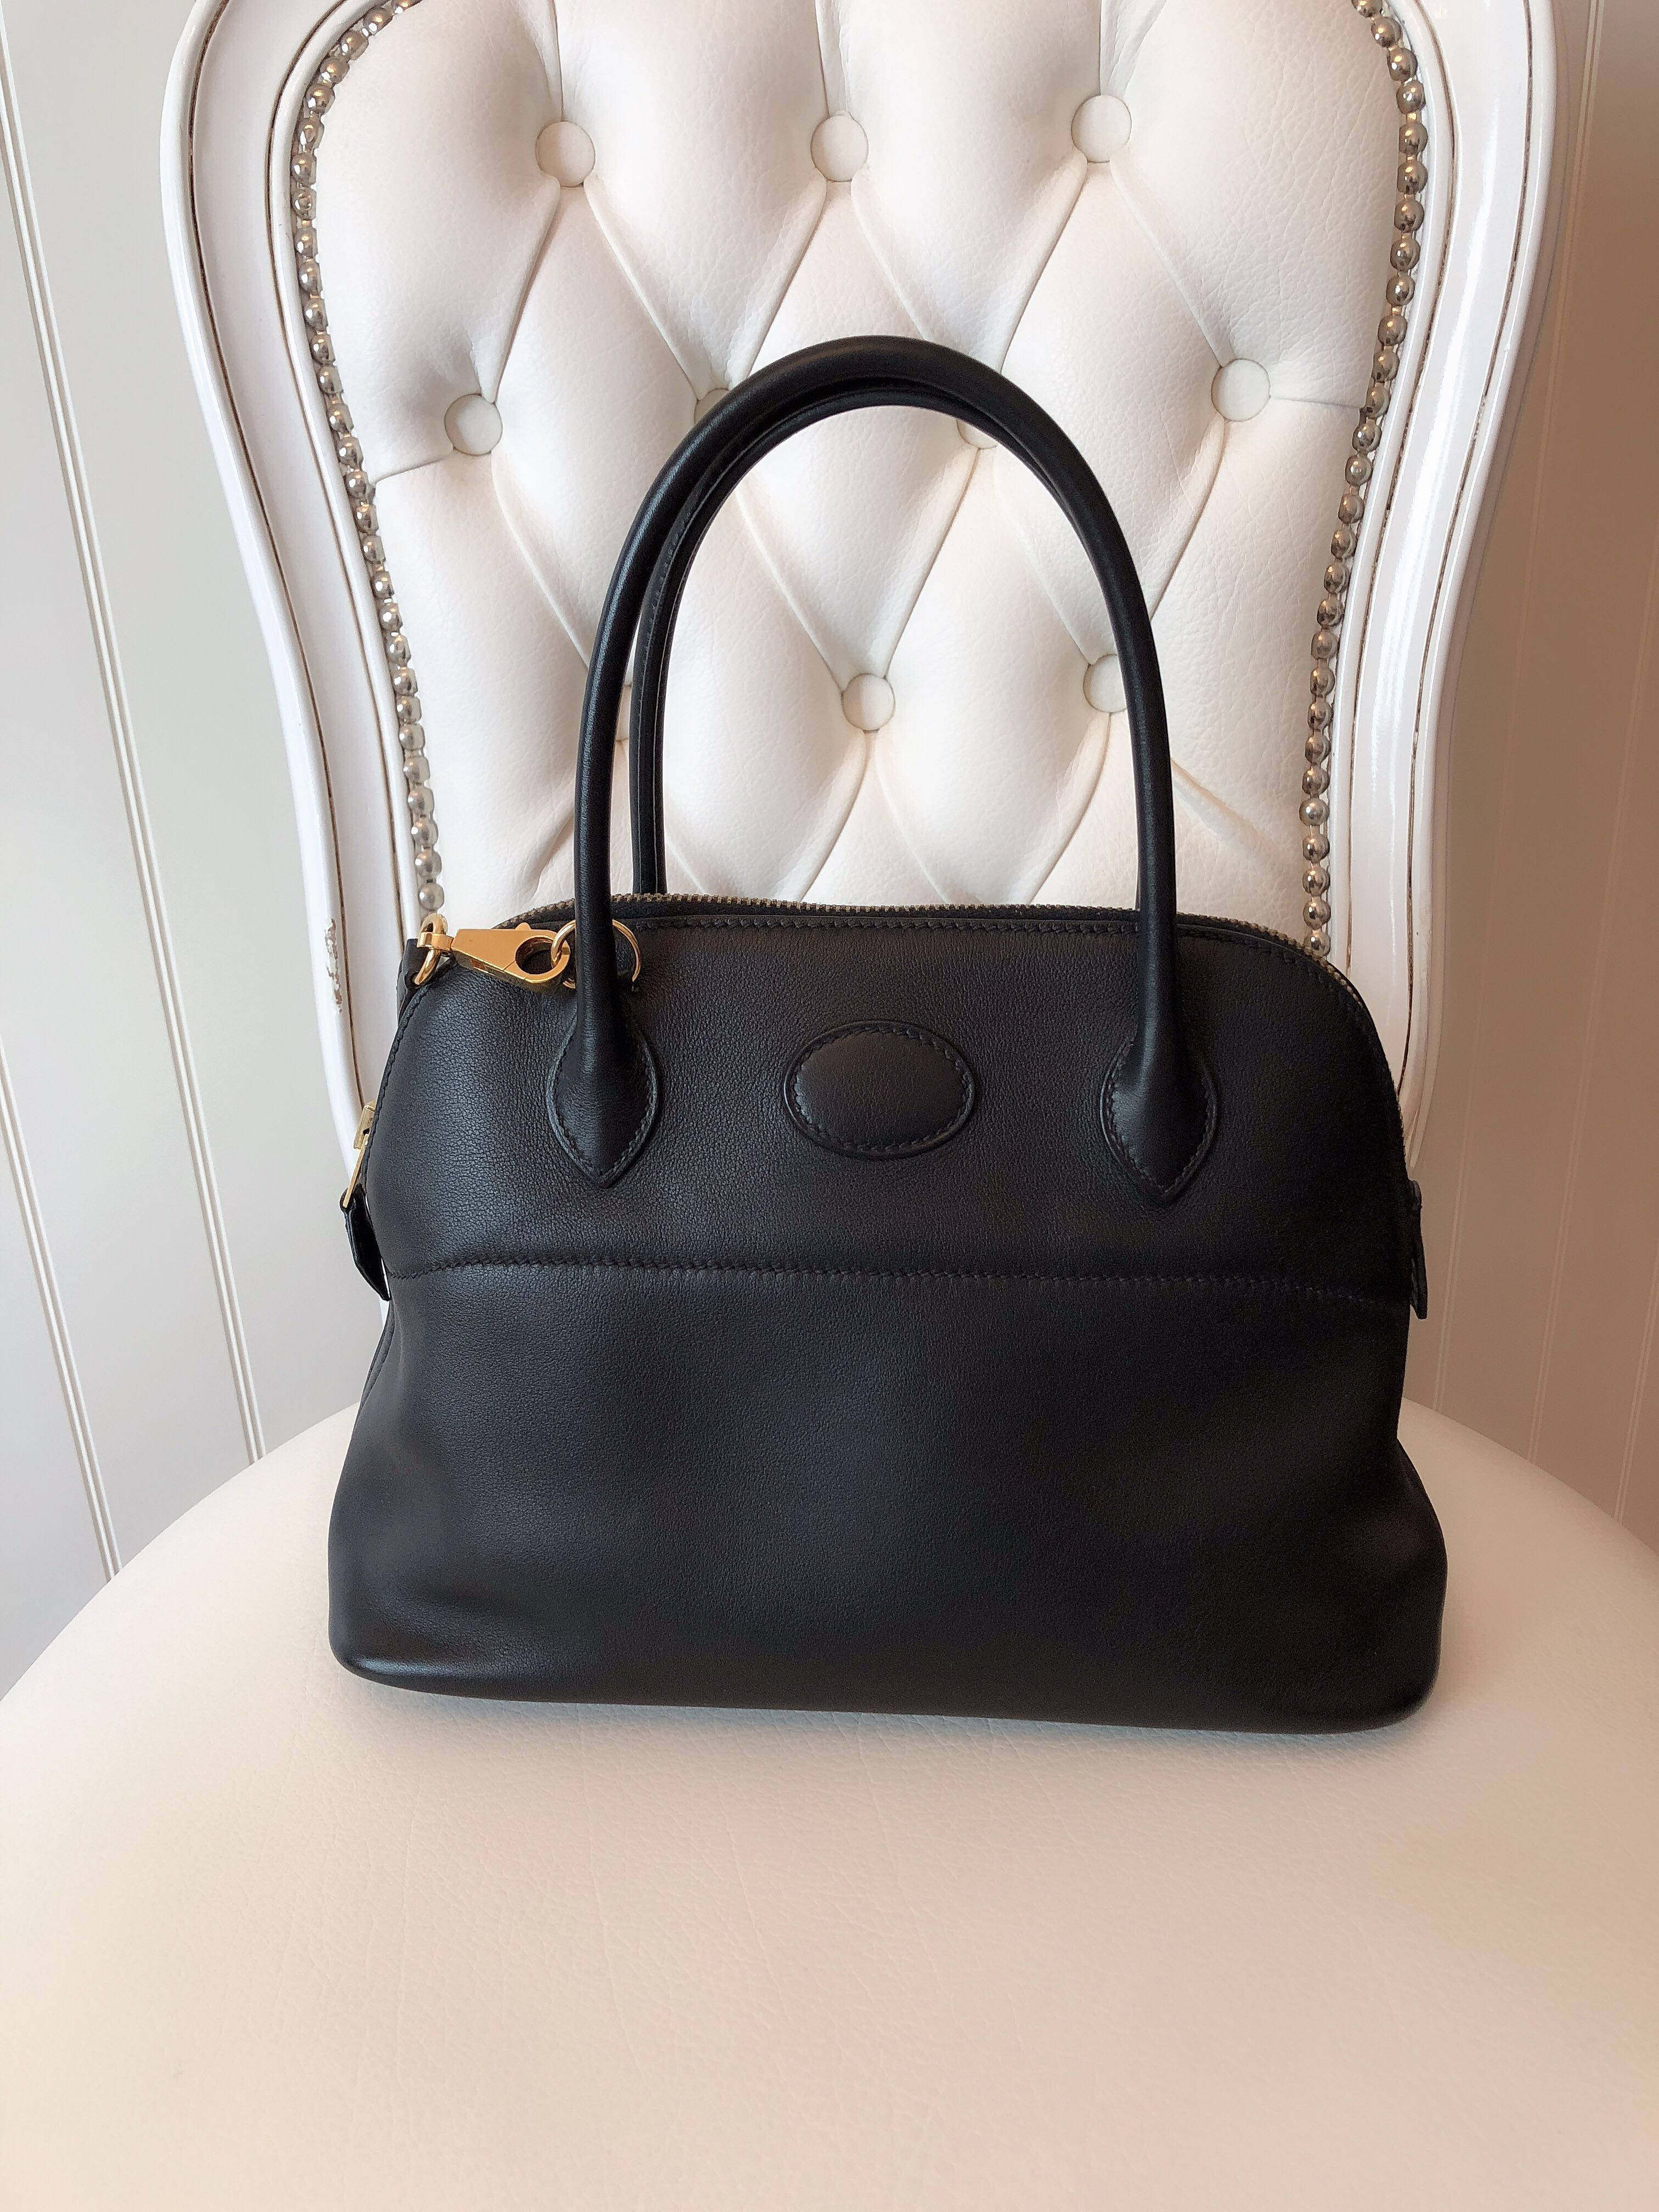 where to buy hermes bolide 27cm luxury bags wallets handbags on carousell  0a3aa cd017 69335717a162d